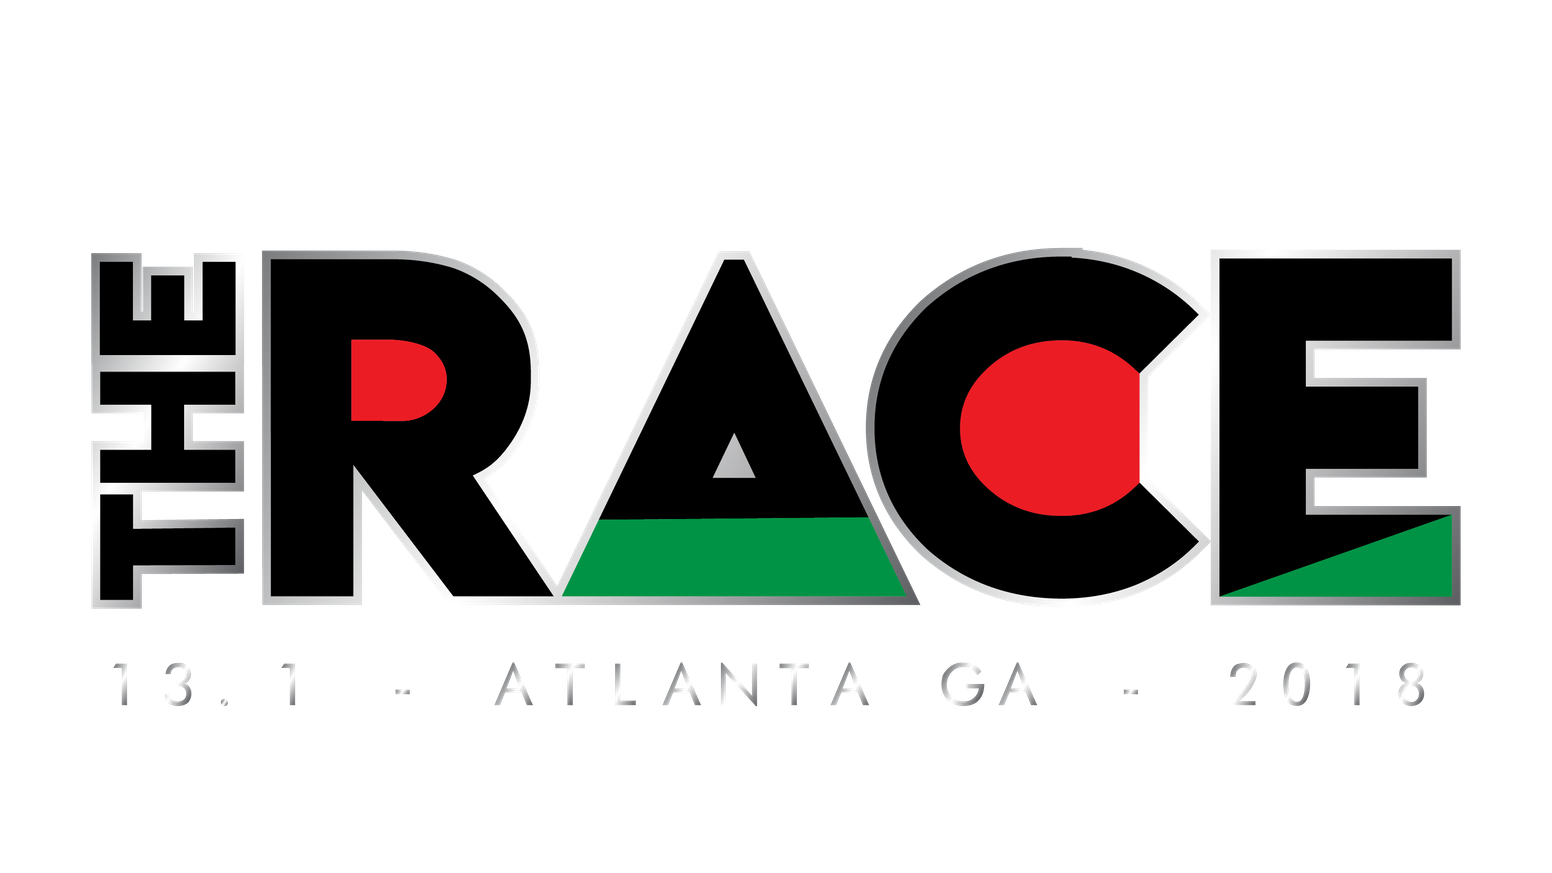 A half marathon weekend event that supports black owned businesses and neighborhoods taking place in Atlanta, GA | October 12-14, 2018